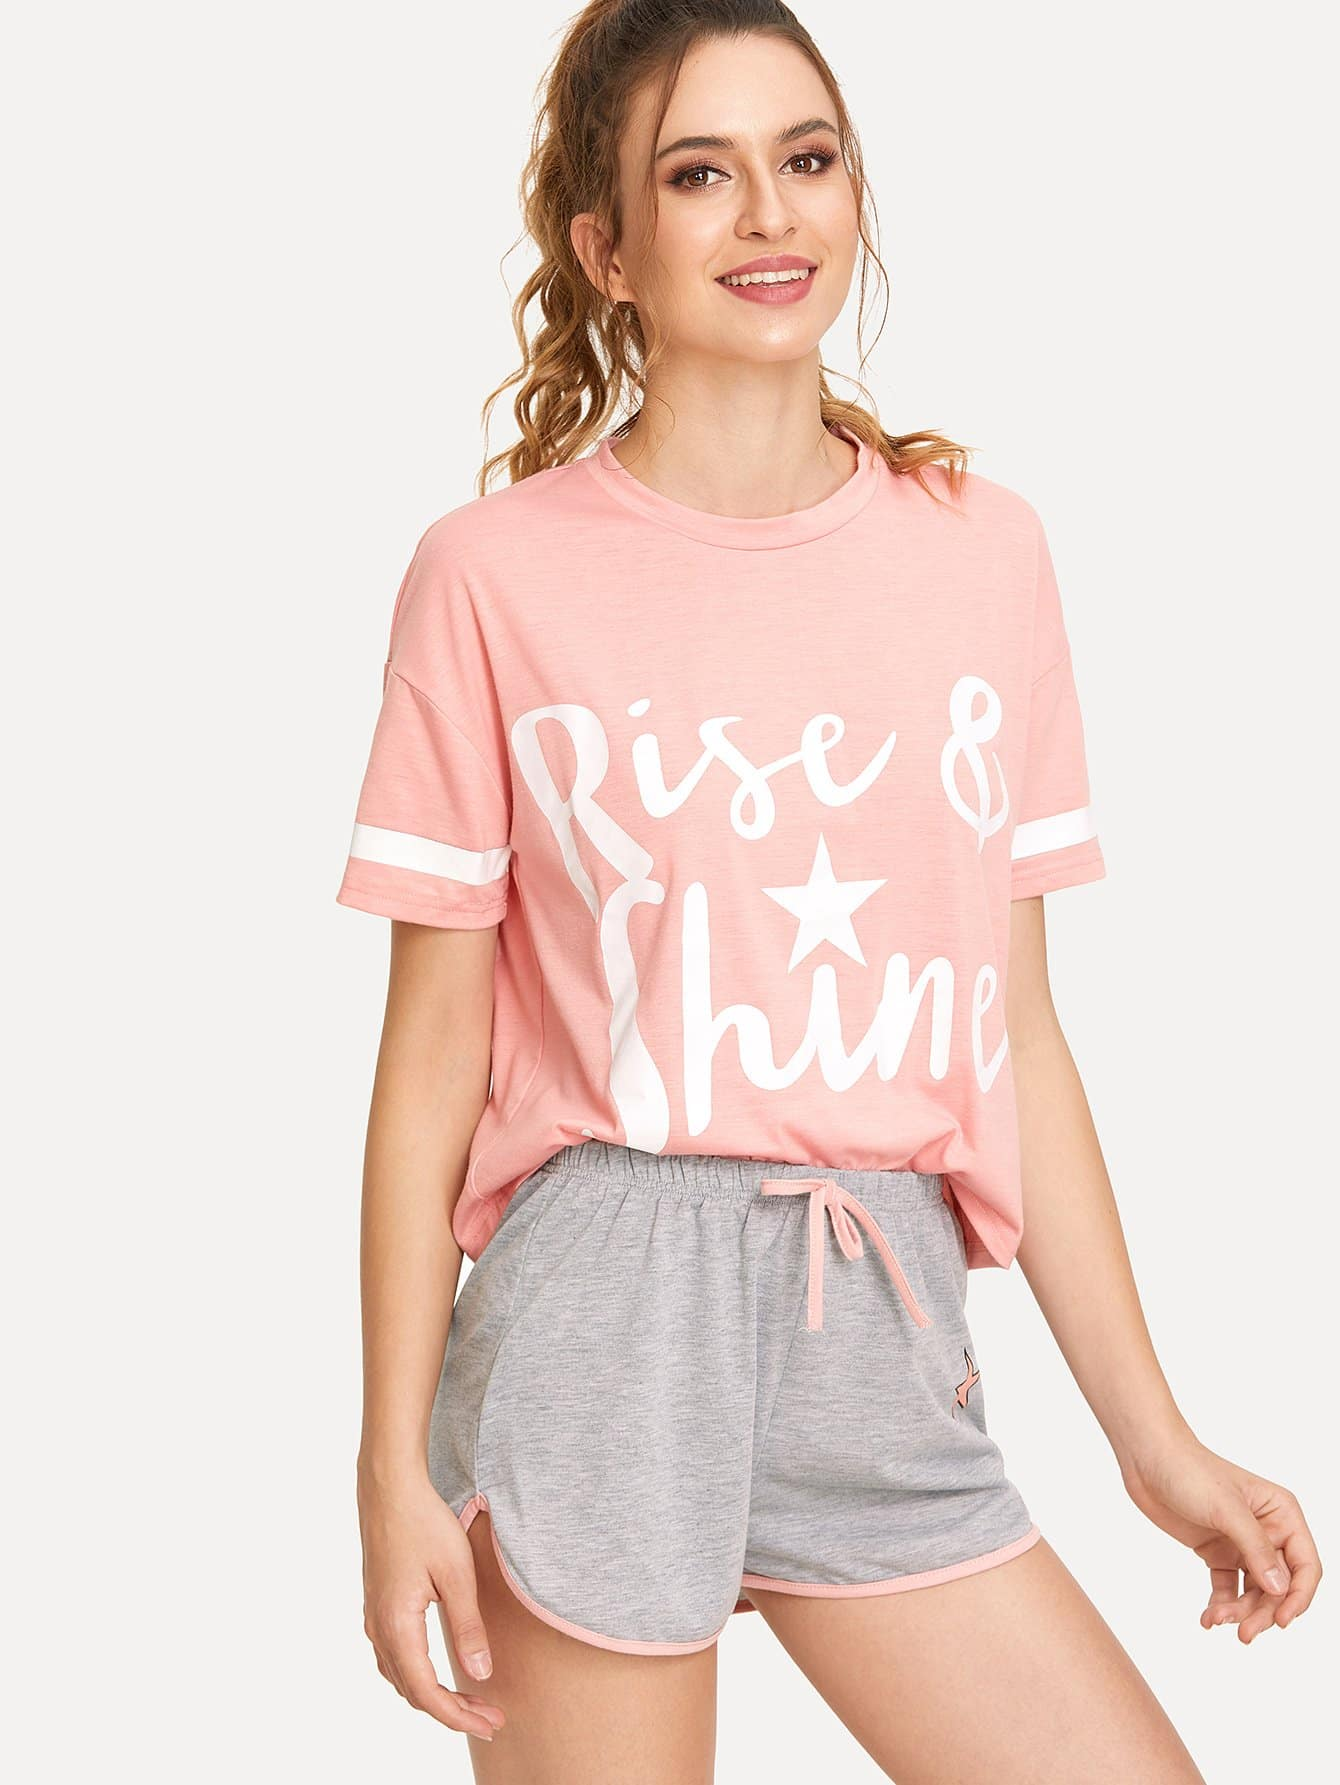 Letter Print Striped Tee & Contrast Binding Shorts PJ Set contrast striped trim camo print tee